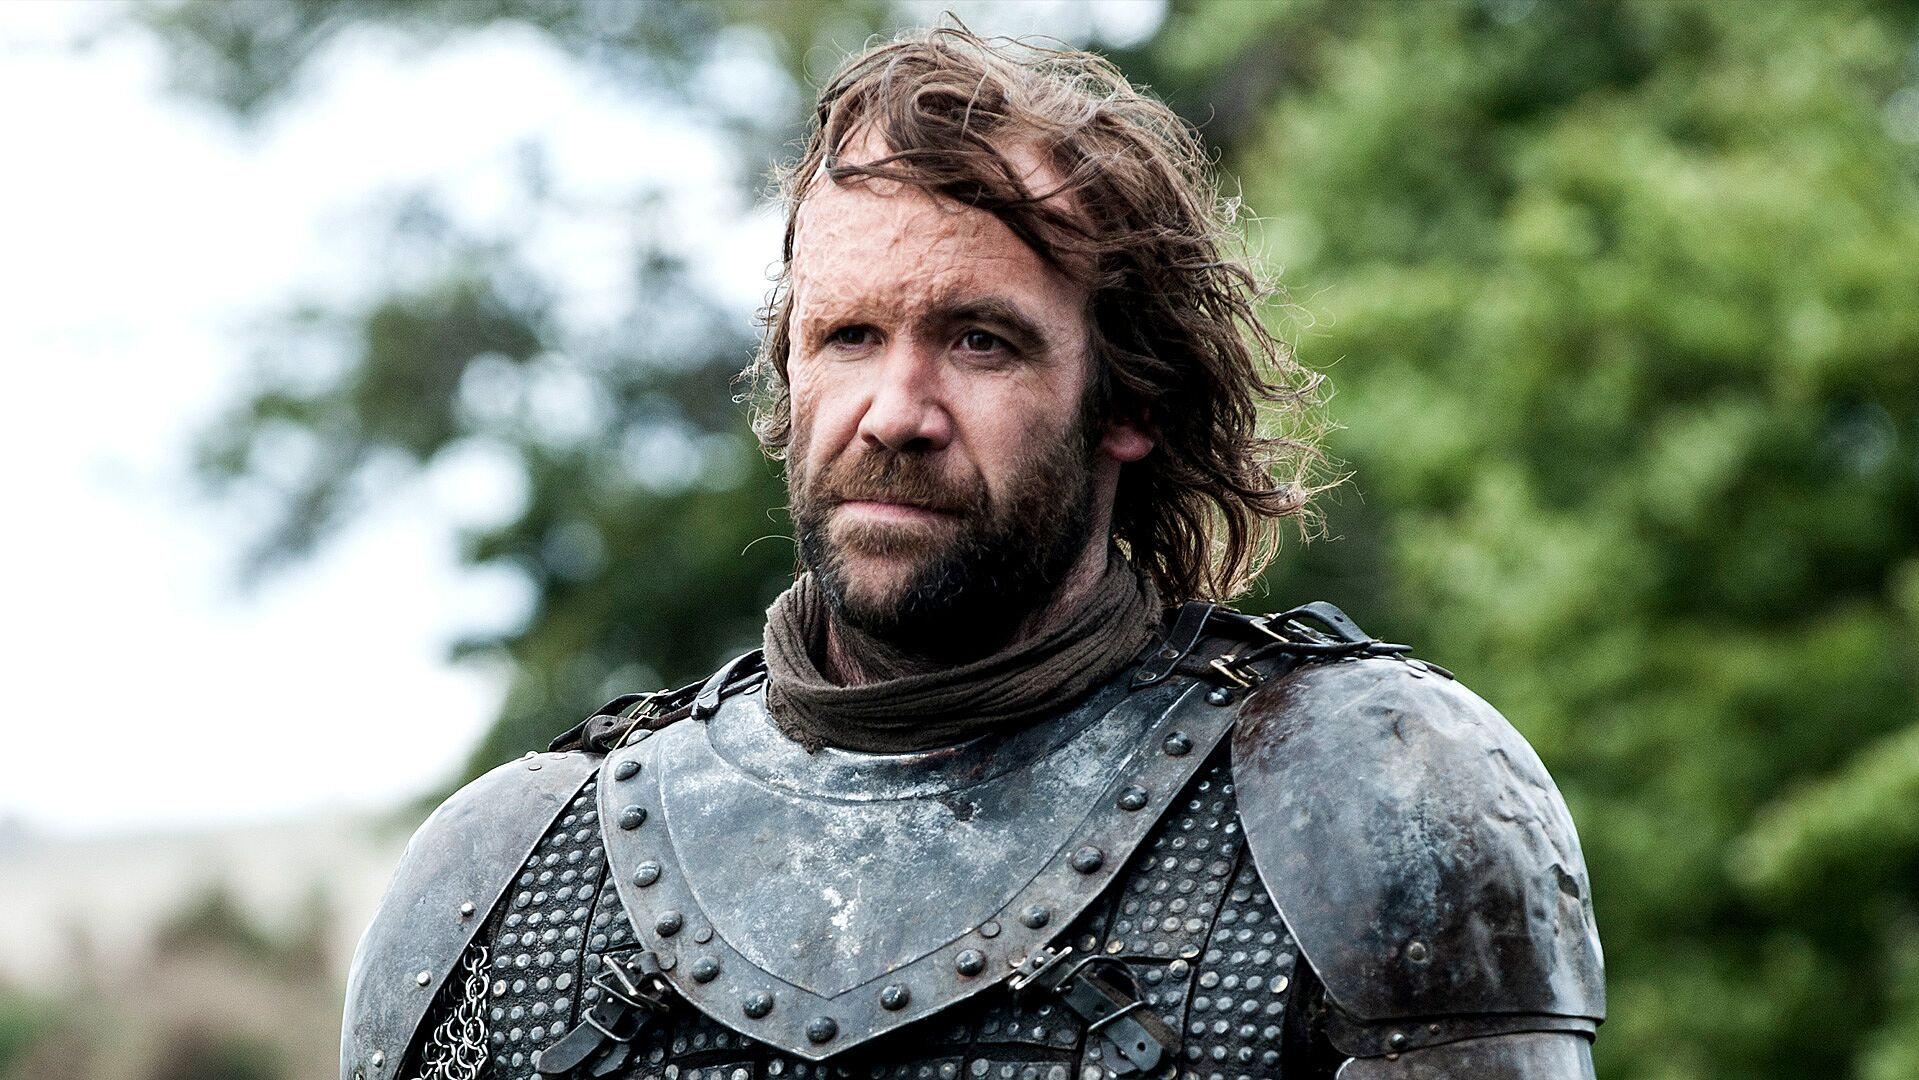 Theory corner: Is the Hound the true Prince That Was Promised?